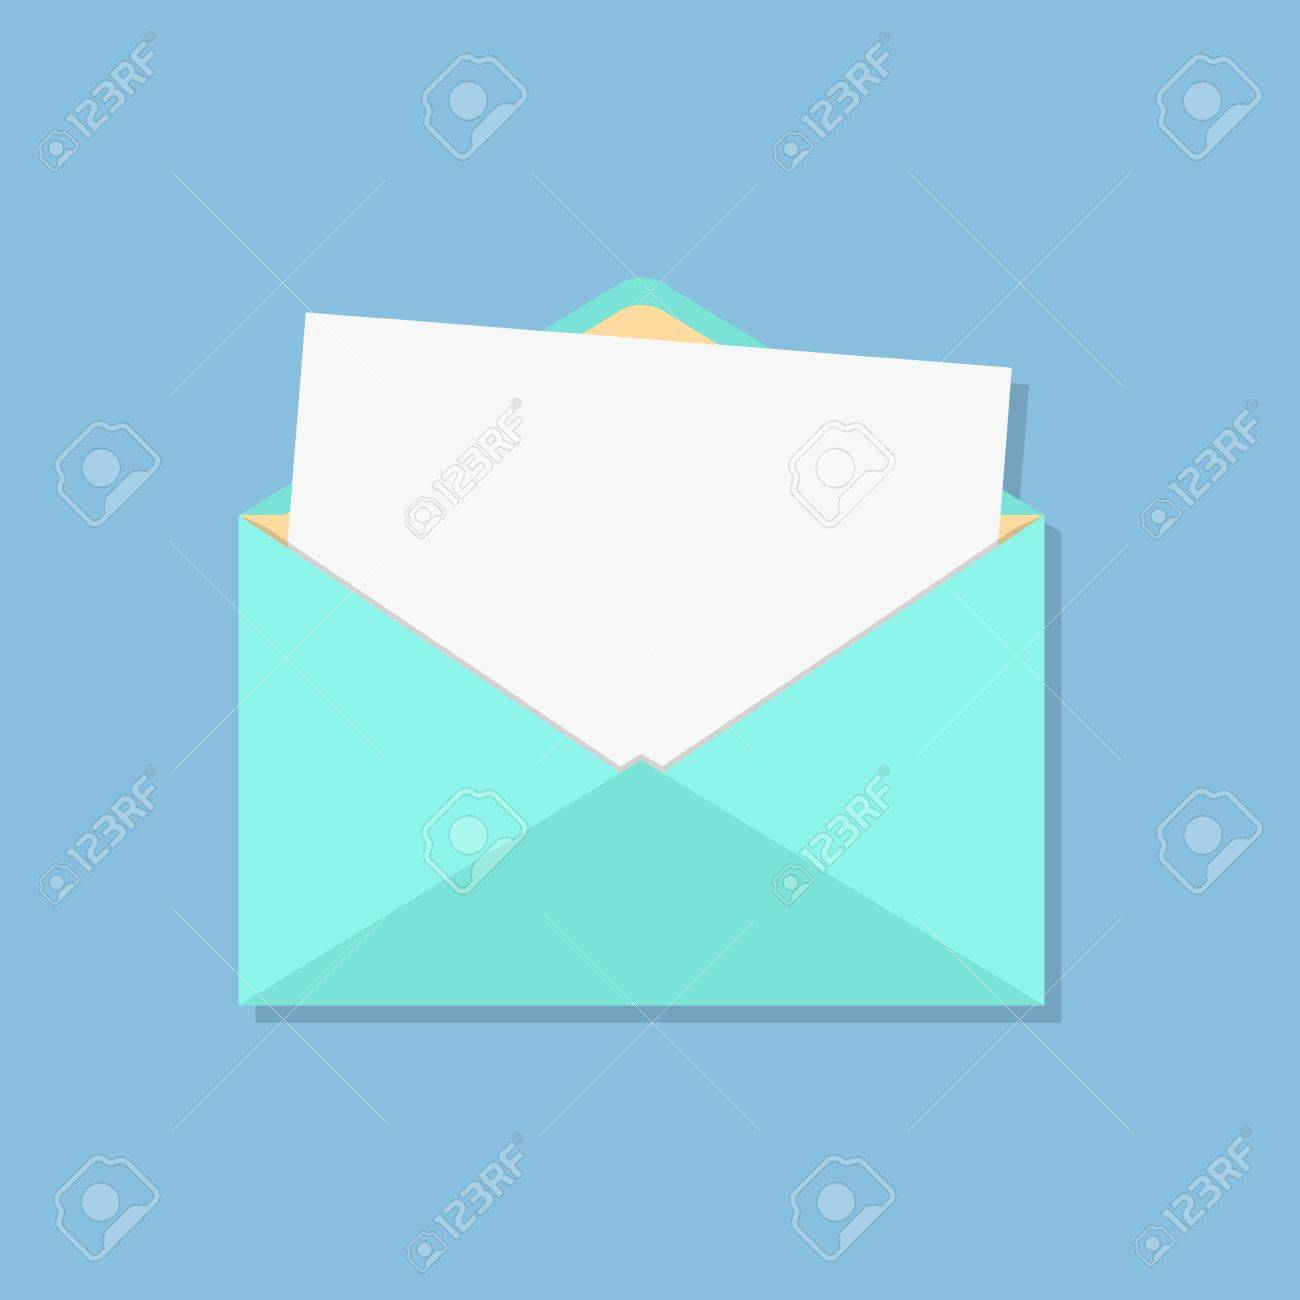 open envelope with white sheet. isolated on blue background. flat style design modern vector illustration - 35085145